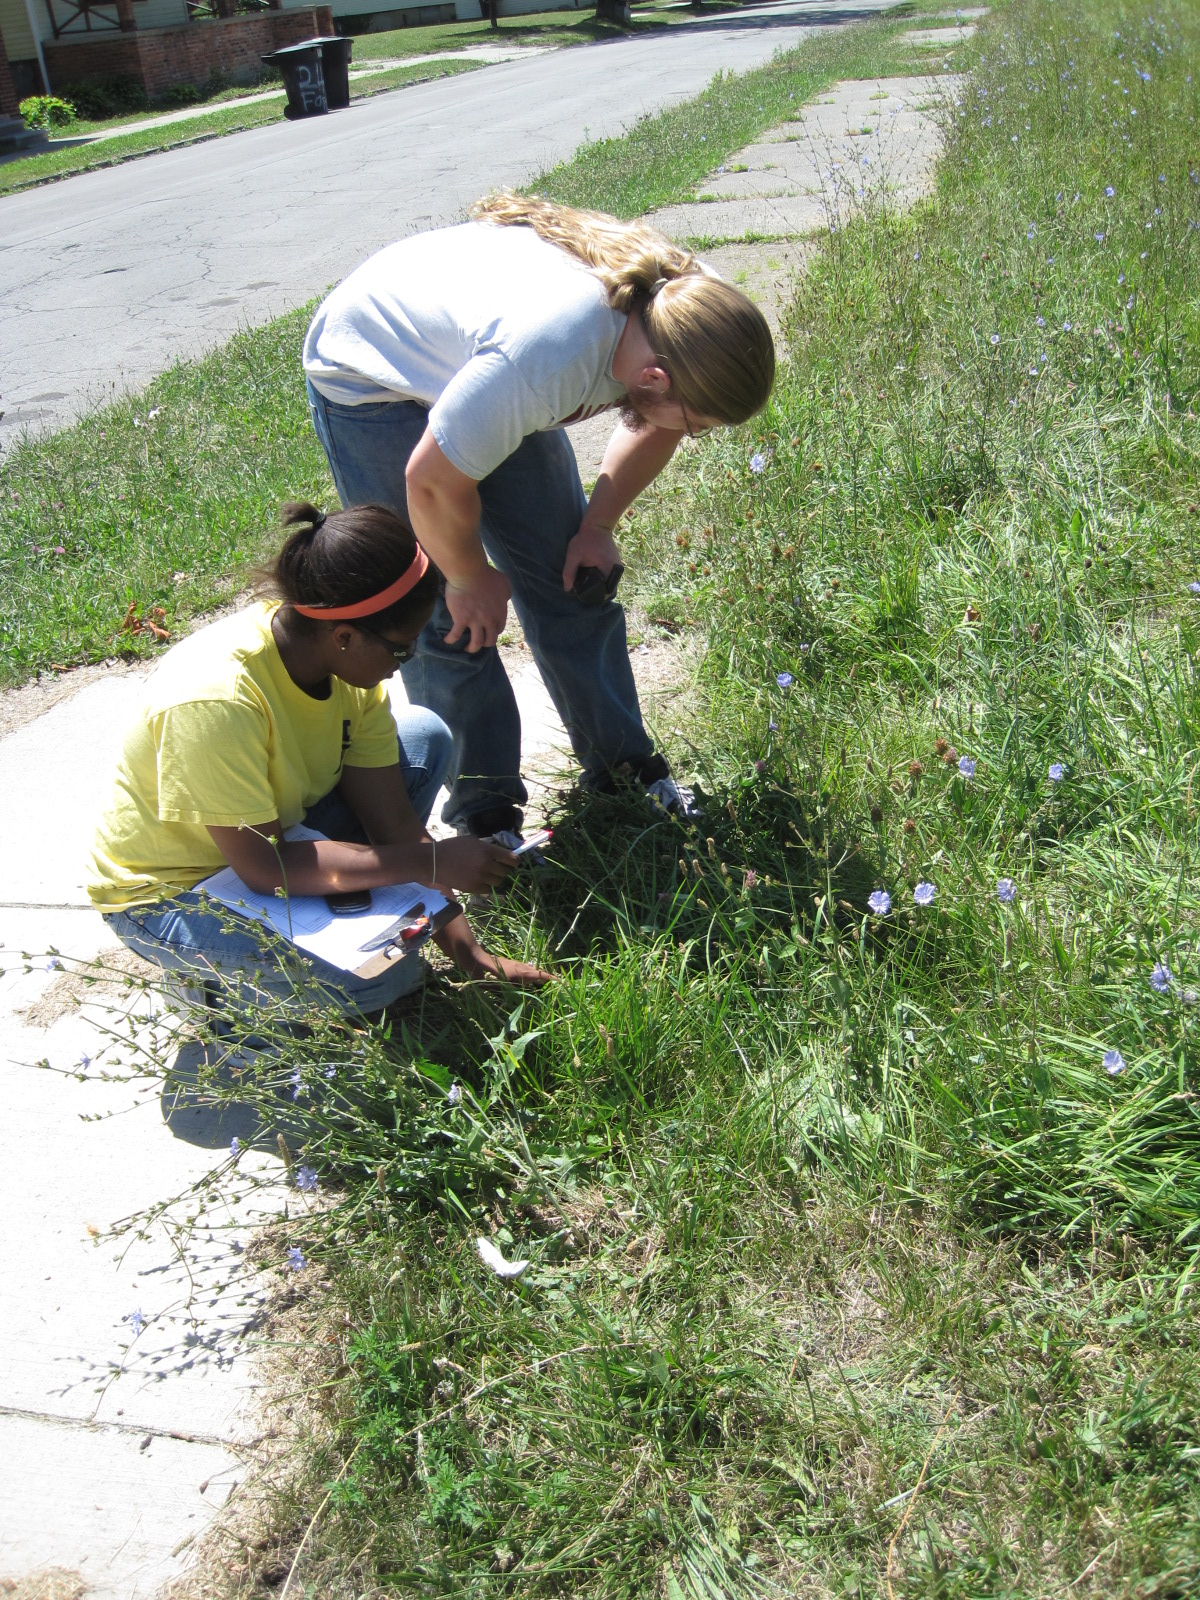 U-M researchers Tiffany Carey (left) and Max Ramsay count ragweed plants on a vacant lot in Detroit. Image credit: Daniel Katz